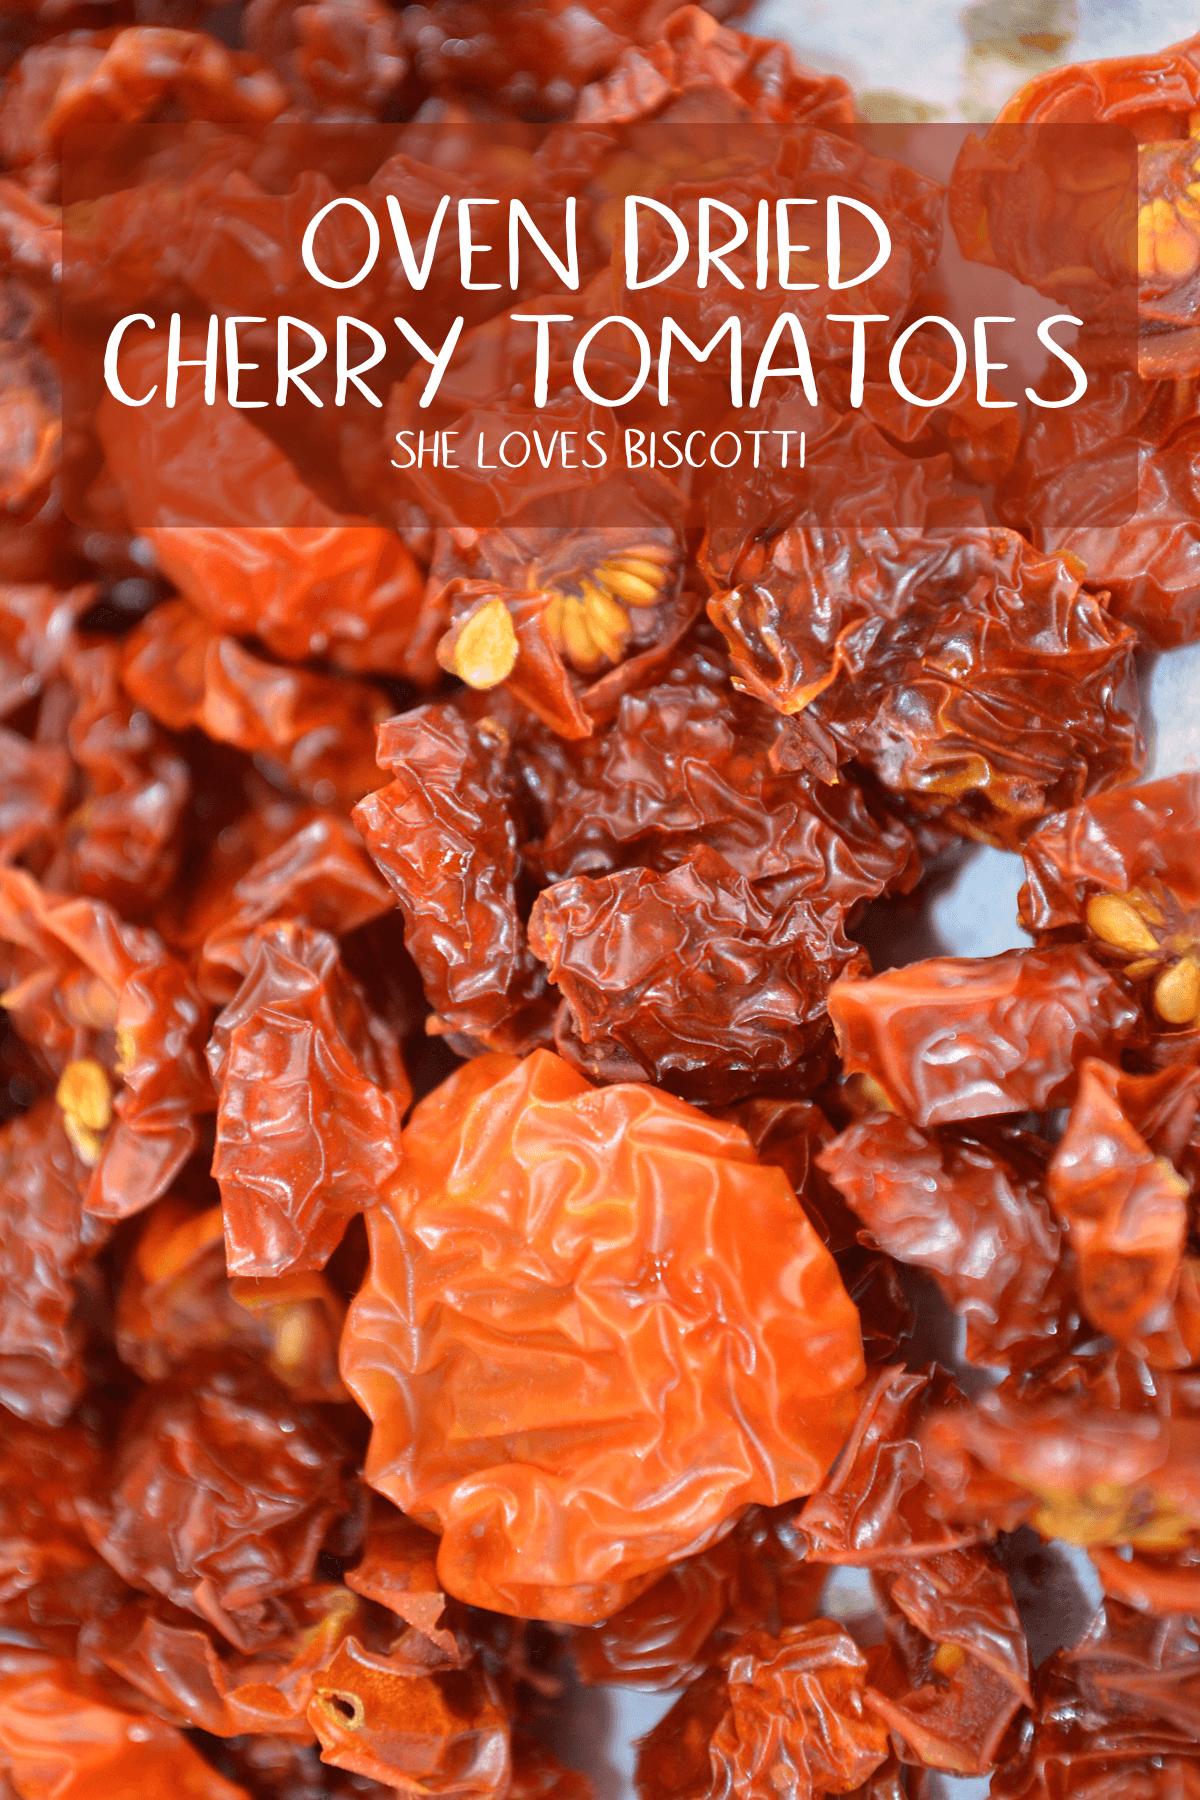 Oven dried Cherry Tomatoes - A DIY on how to make homemade Oven Dried Tomatoes It's almost impossible to believe but once cherry tomatoes are dried, the sweetness is intensified. These dried cherry tomatoes will enhance the flavors in almost any recipe #shelovesbiscotti #omelettes, #frittatas, #salads, #pastas #pesto #soups and so much more!!! #ovendriedtomatoes #sundriedtomatoes #tomatoes #appetizers #summerrecipe #Italianrecipe #DIY